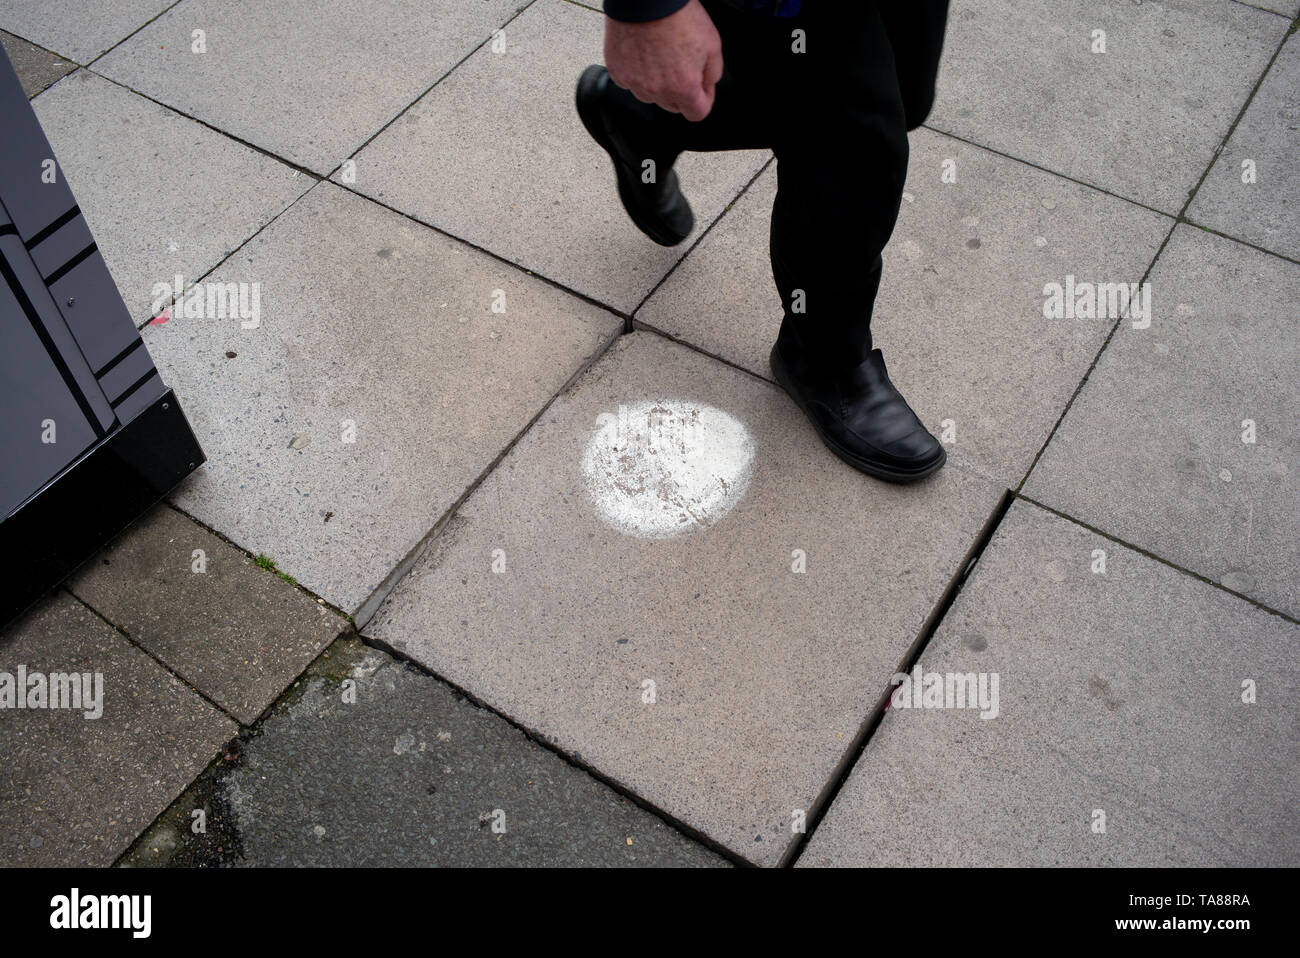 A marked paving stone with a paint spot stepped upon in Southampton city centre which needs attention as it moves and is dangerous as a trip hazard. - Stock Image